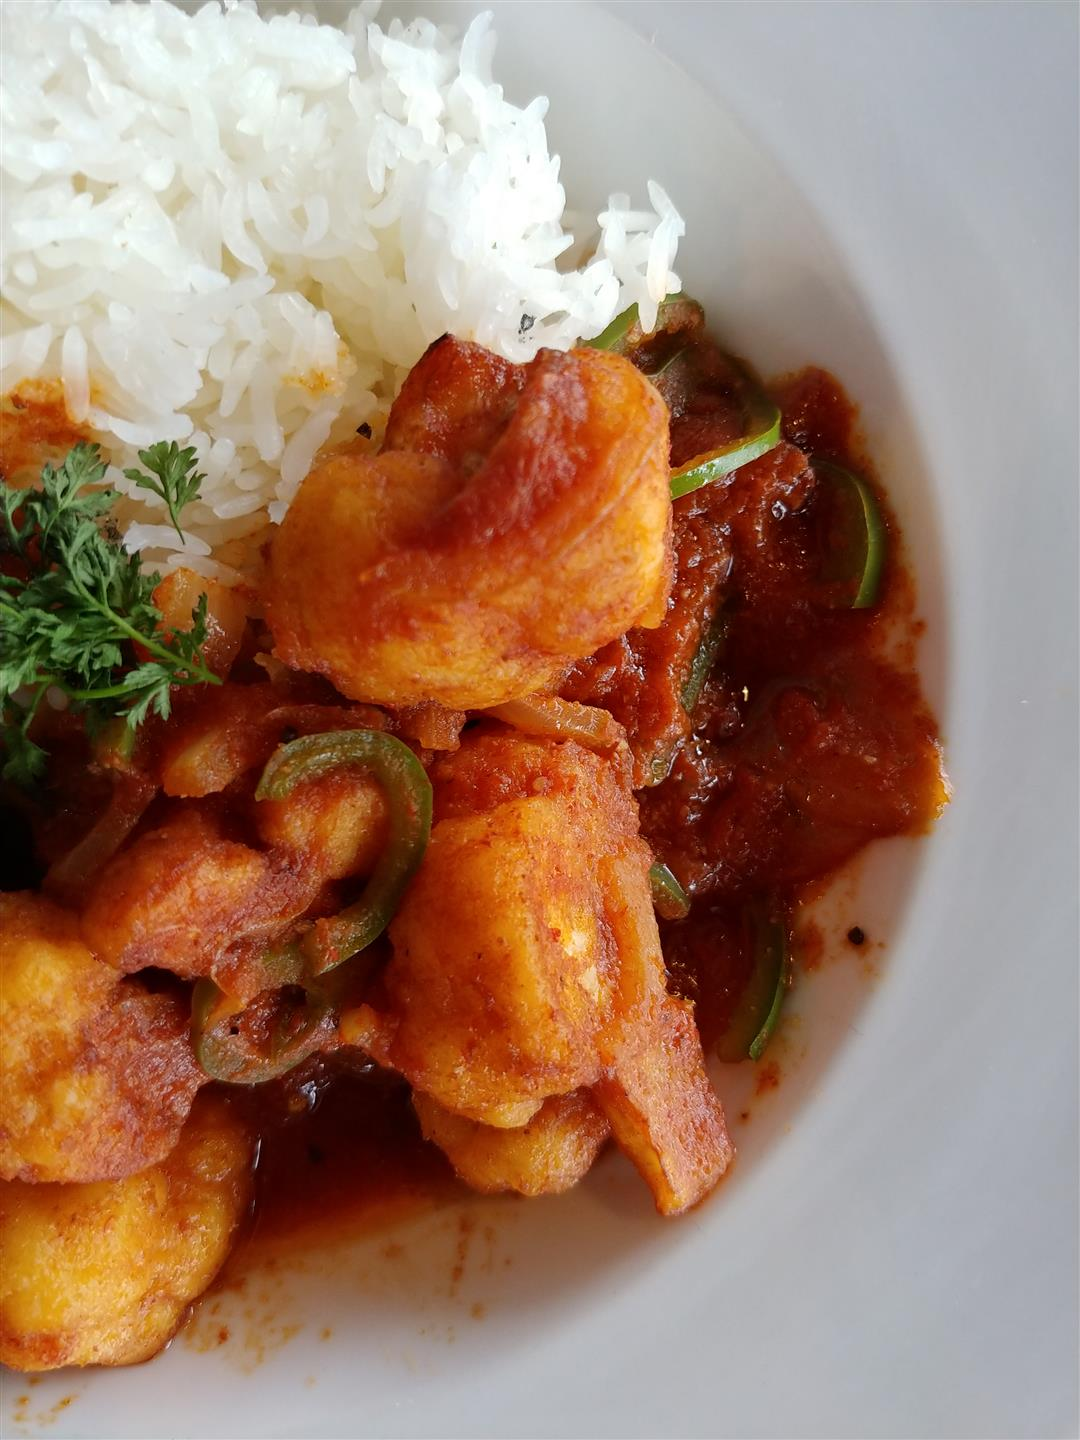 shrimp in a sauce and white rice